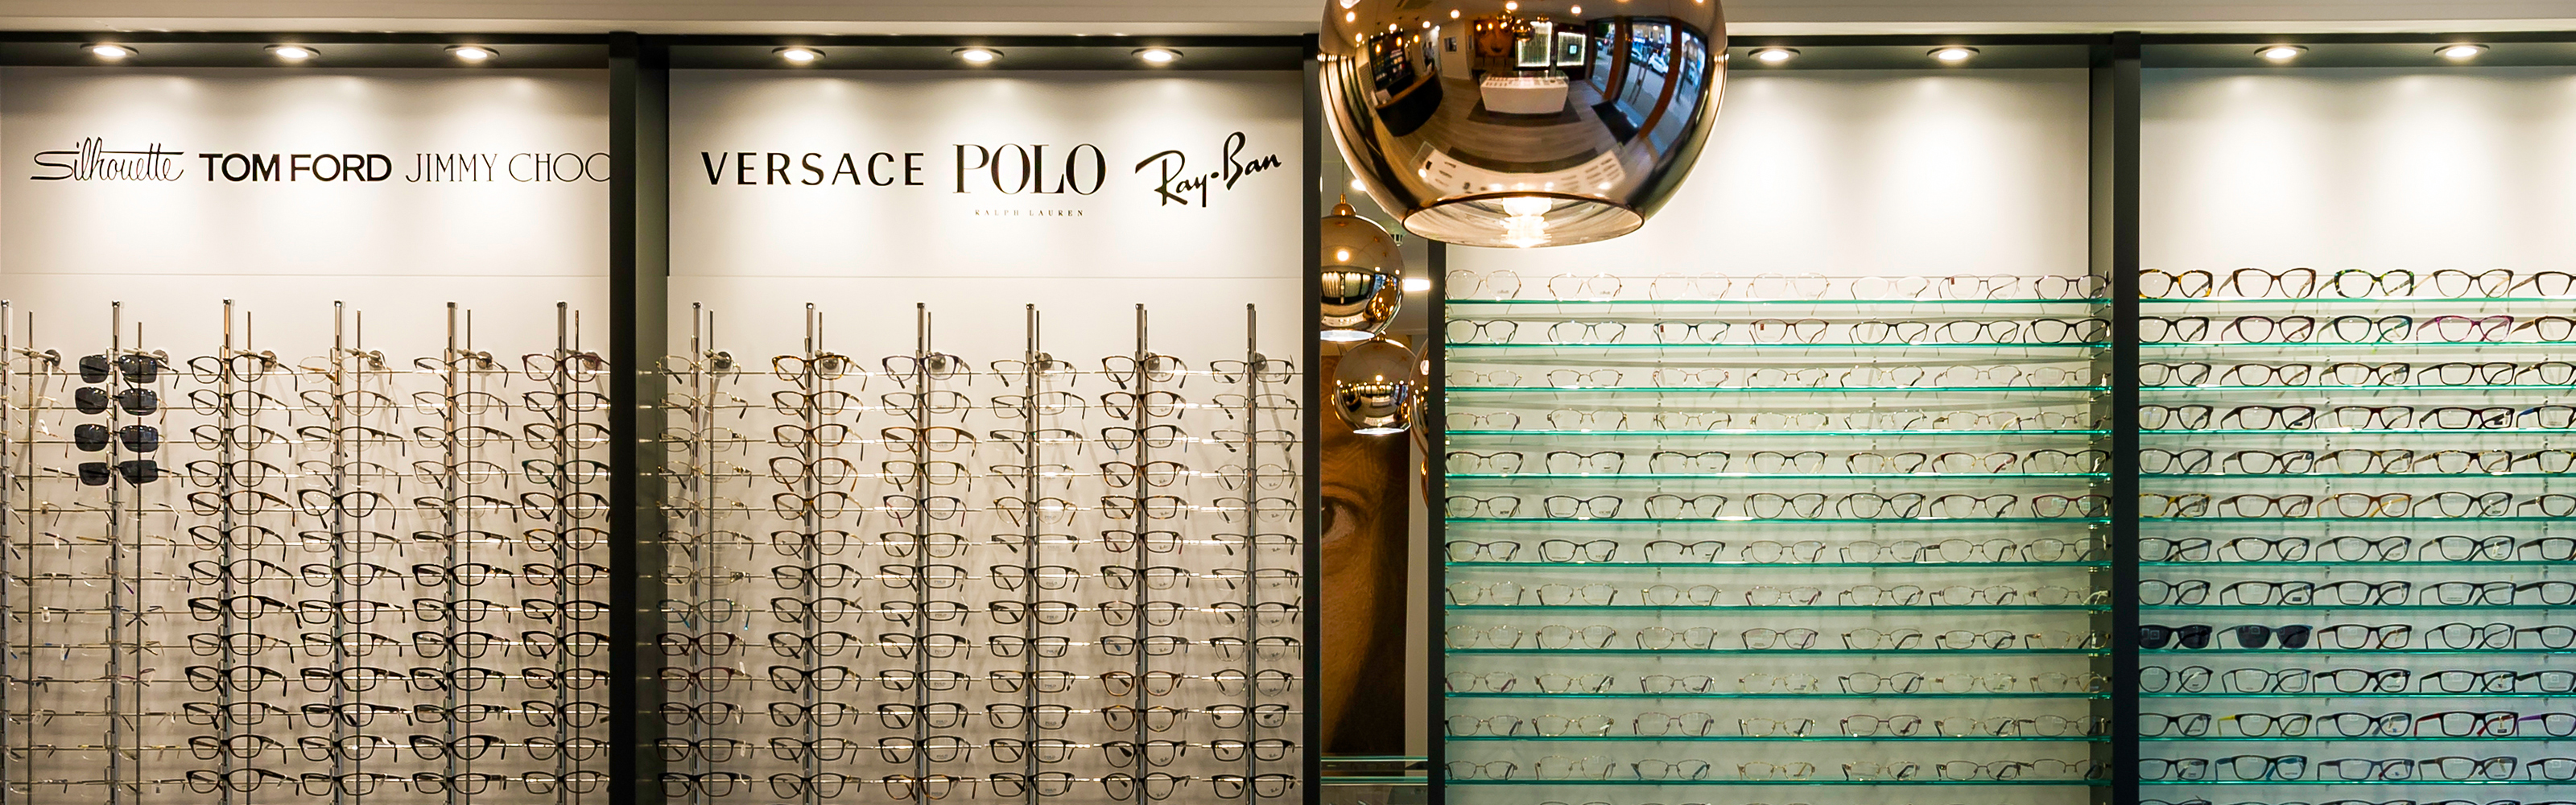 eyedeal vision opticians glsses display wall